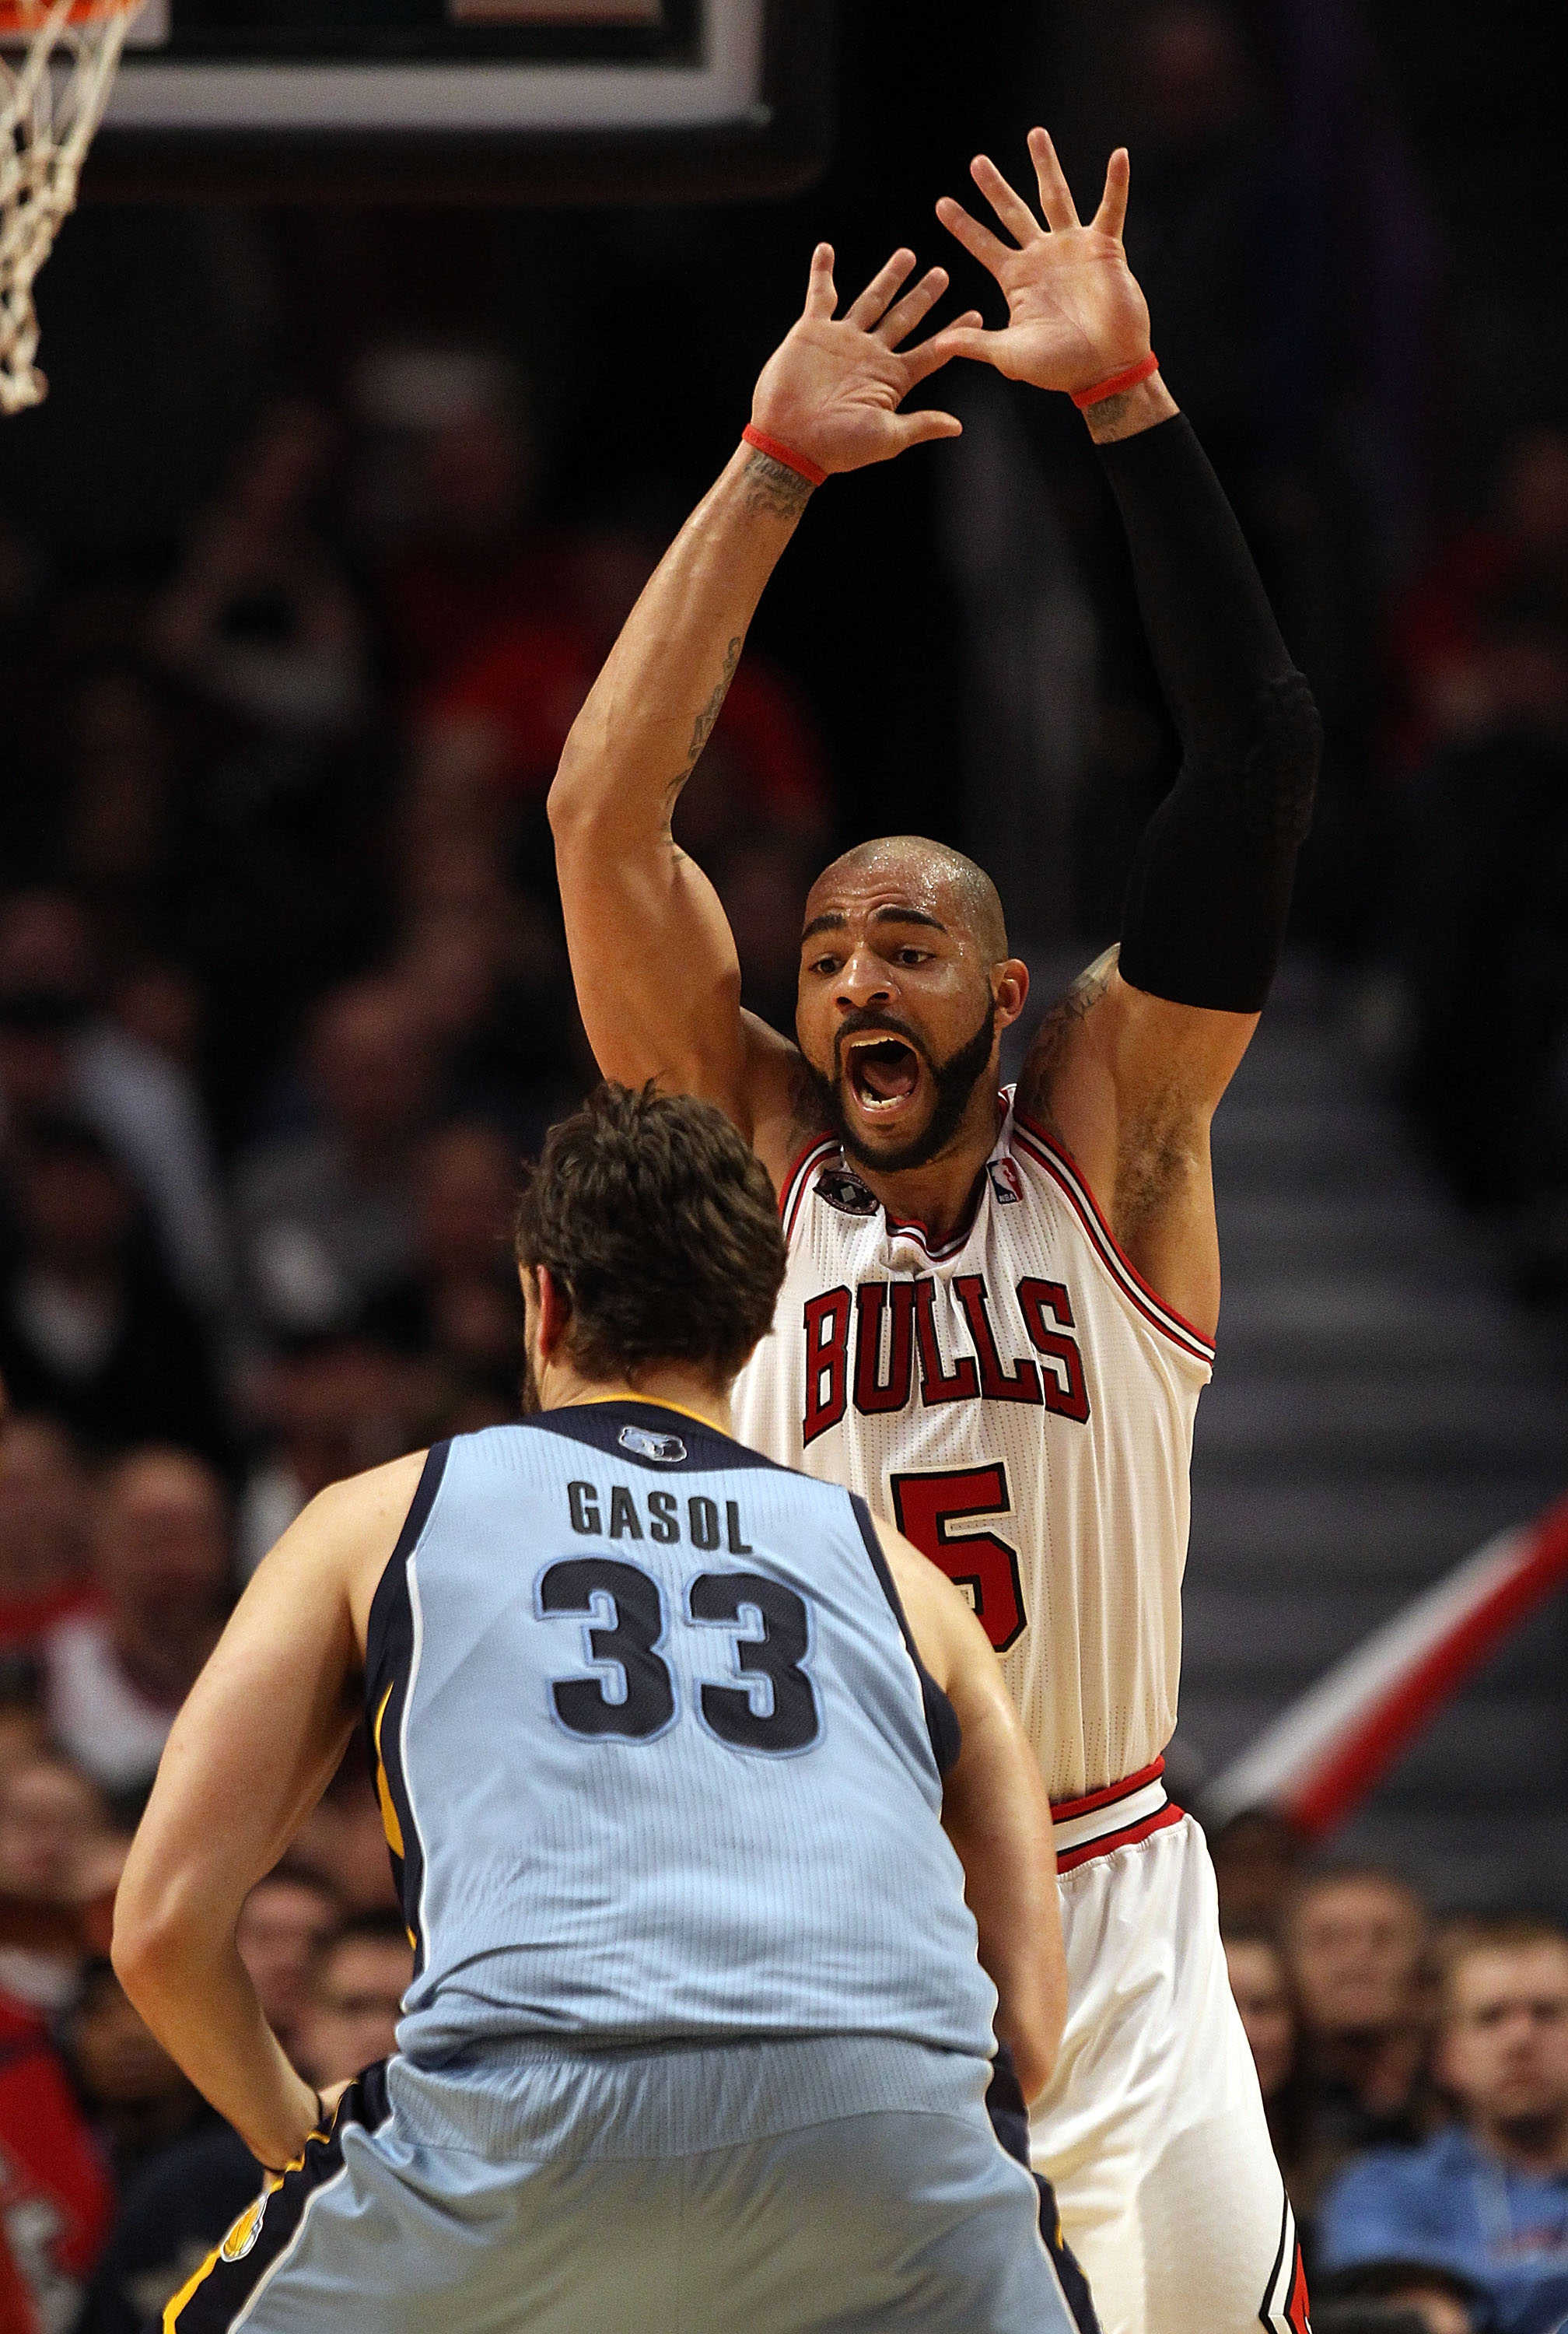 CHICAGO, IL - MARCH 25: Carlos Boozer #5 of the Chicago Bulls defends against Marc Gasol #33 of the Memphis Grizzlies at the United Center on March 25, 2011 in Chicago, Illinois. The Bulls defeated the Grizzlies 99-96. NOTE TO USER: User expressly acknowl